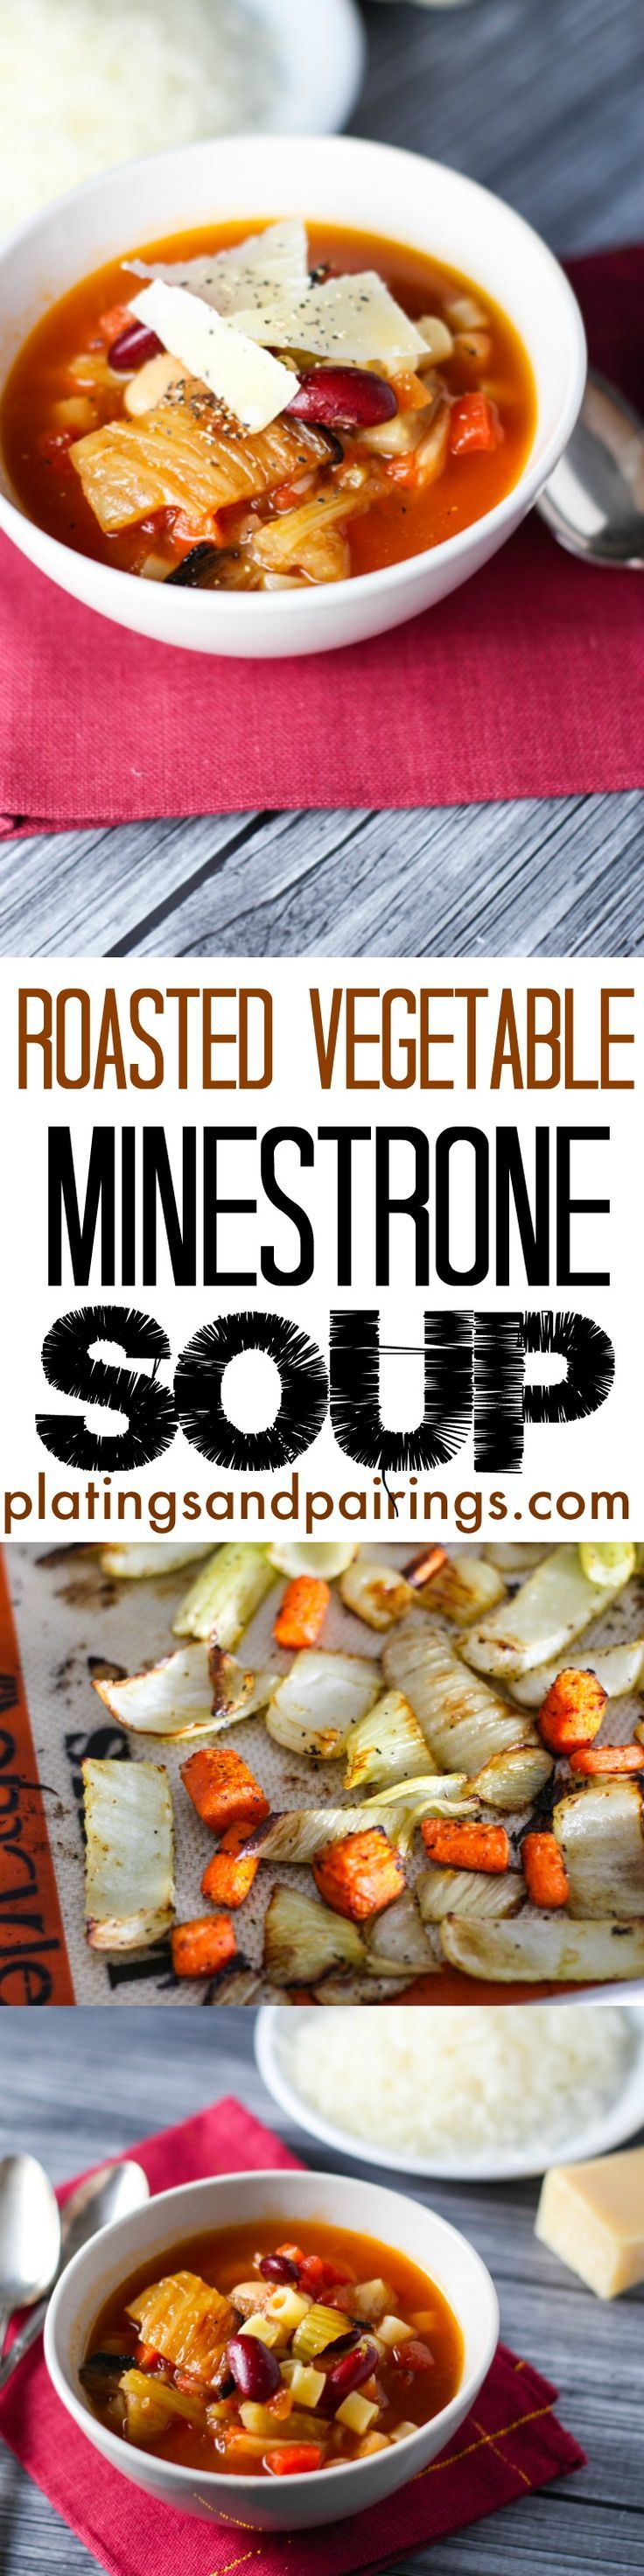 Roasted Vegetable Minestrone | Recipe | Roasted Vegetables, Vegetables ...